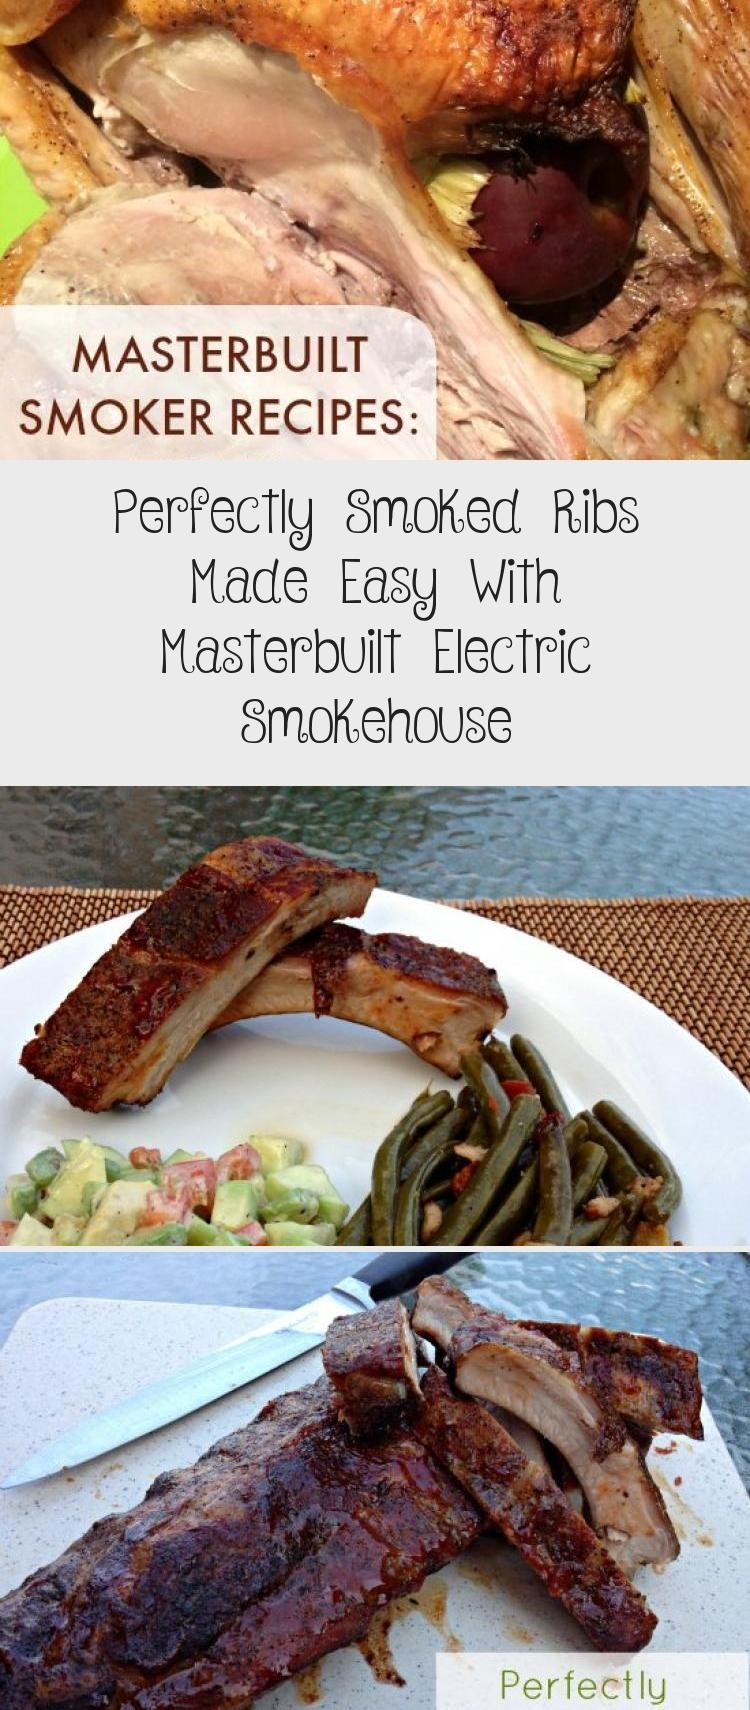 Perfectly Smoked Ribs Made Easy With Masterbuilt Electric Smokehouse Recipe Of The Days Chicken Meat Recipe In 2020 Smoked Ribs Smokehouse Recipes Meat Recipes